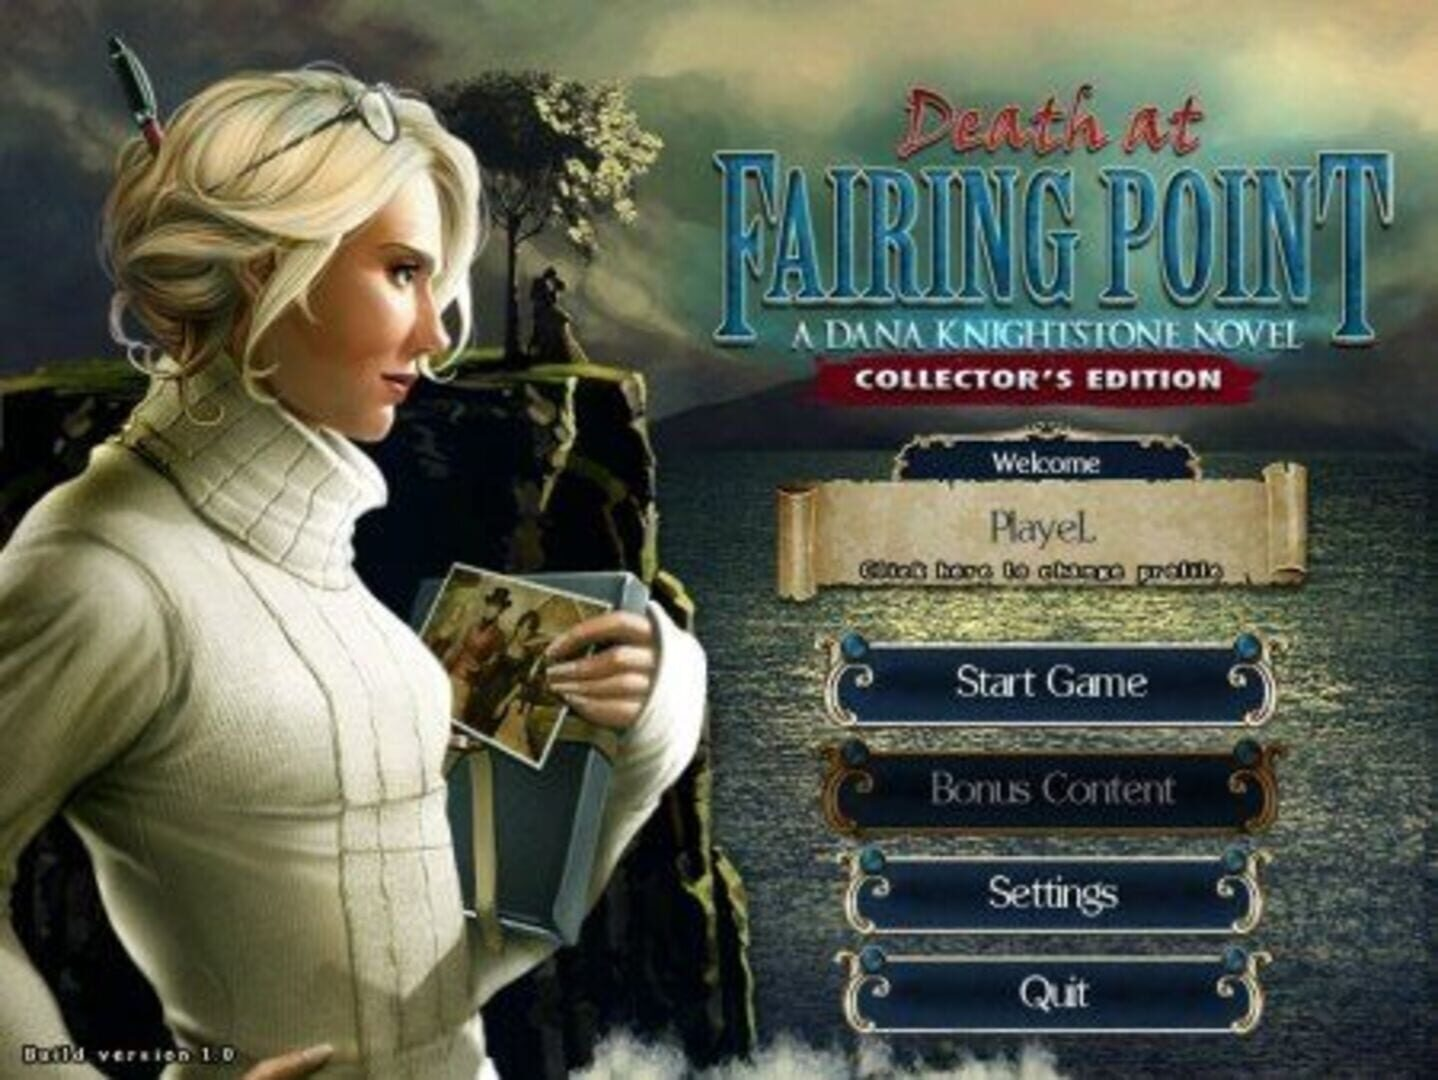 buy Death at Fairing Point: A Dana Knightstone Novel cd key for xbox platform